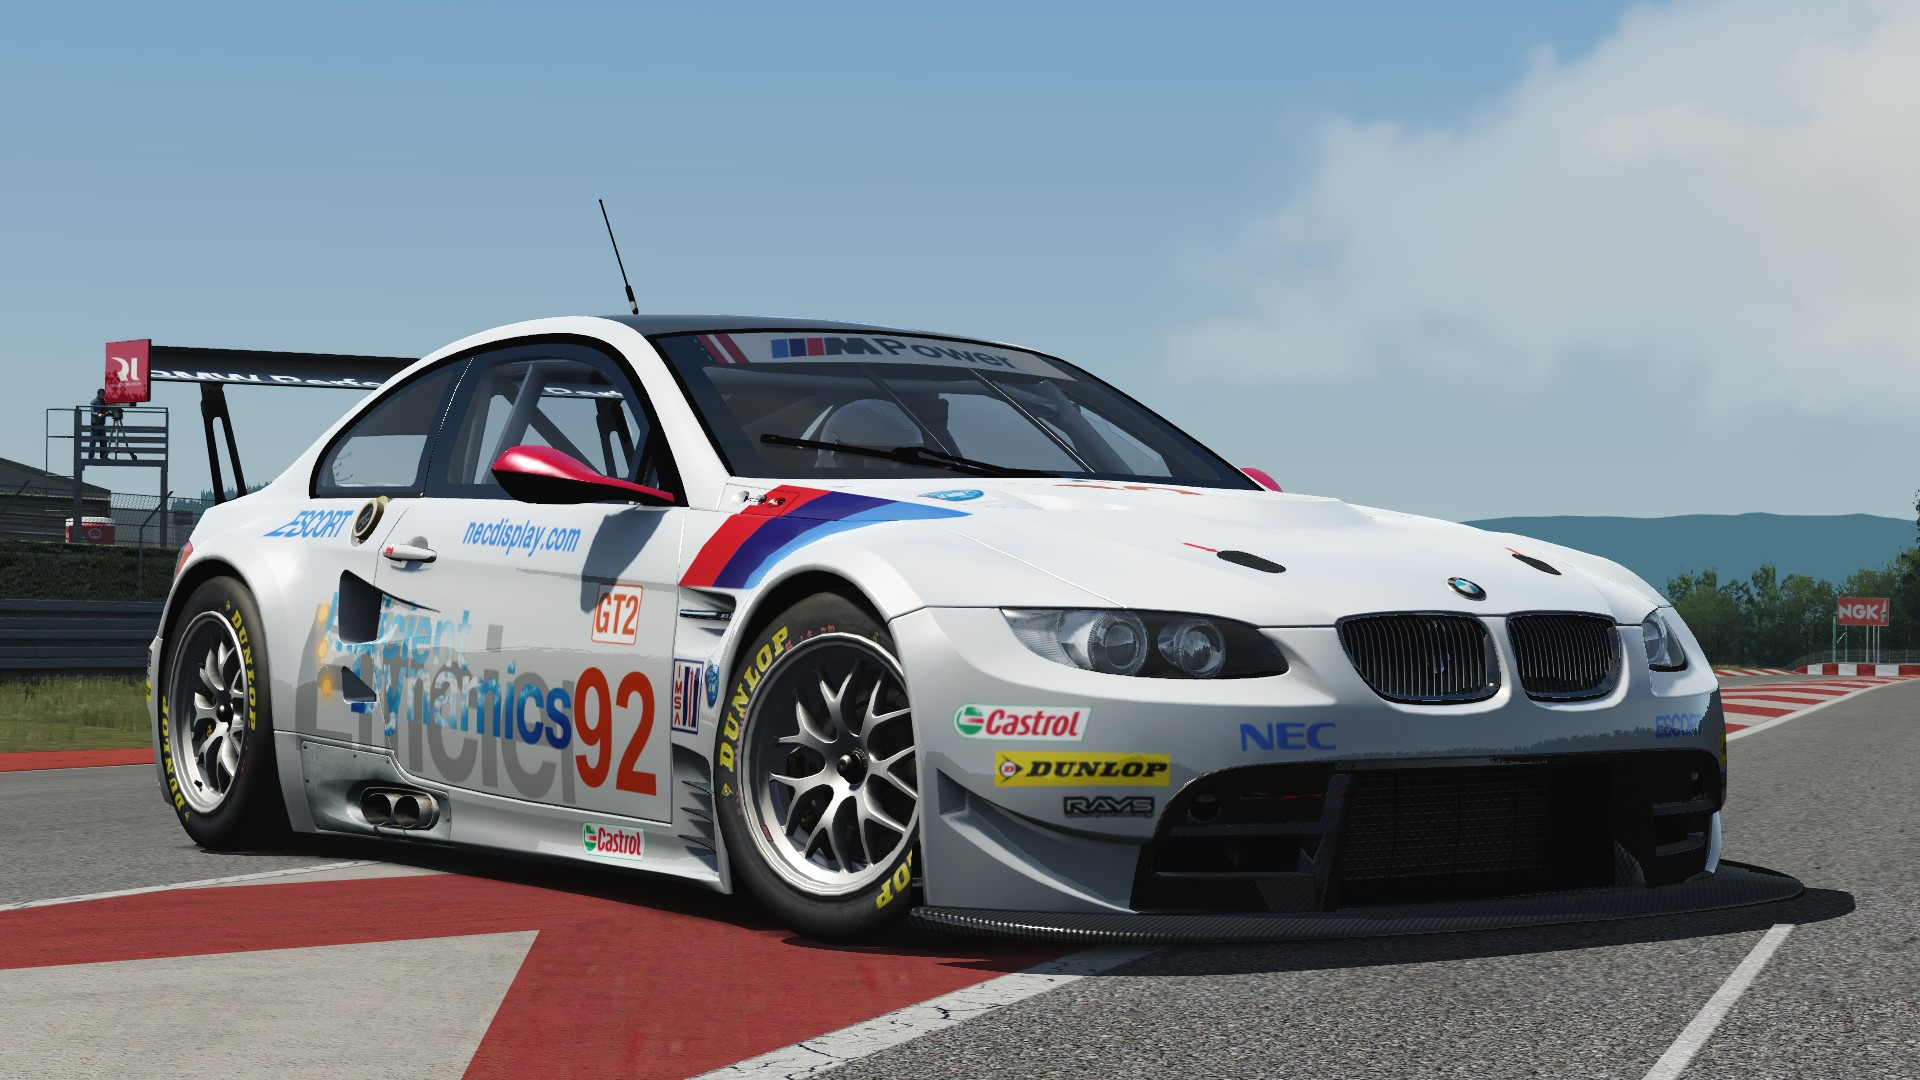 Screenshot_bmw_m3_gt2_nurburgring-sprint_16-2-2015-23-41-34.jpg